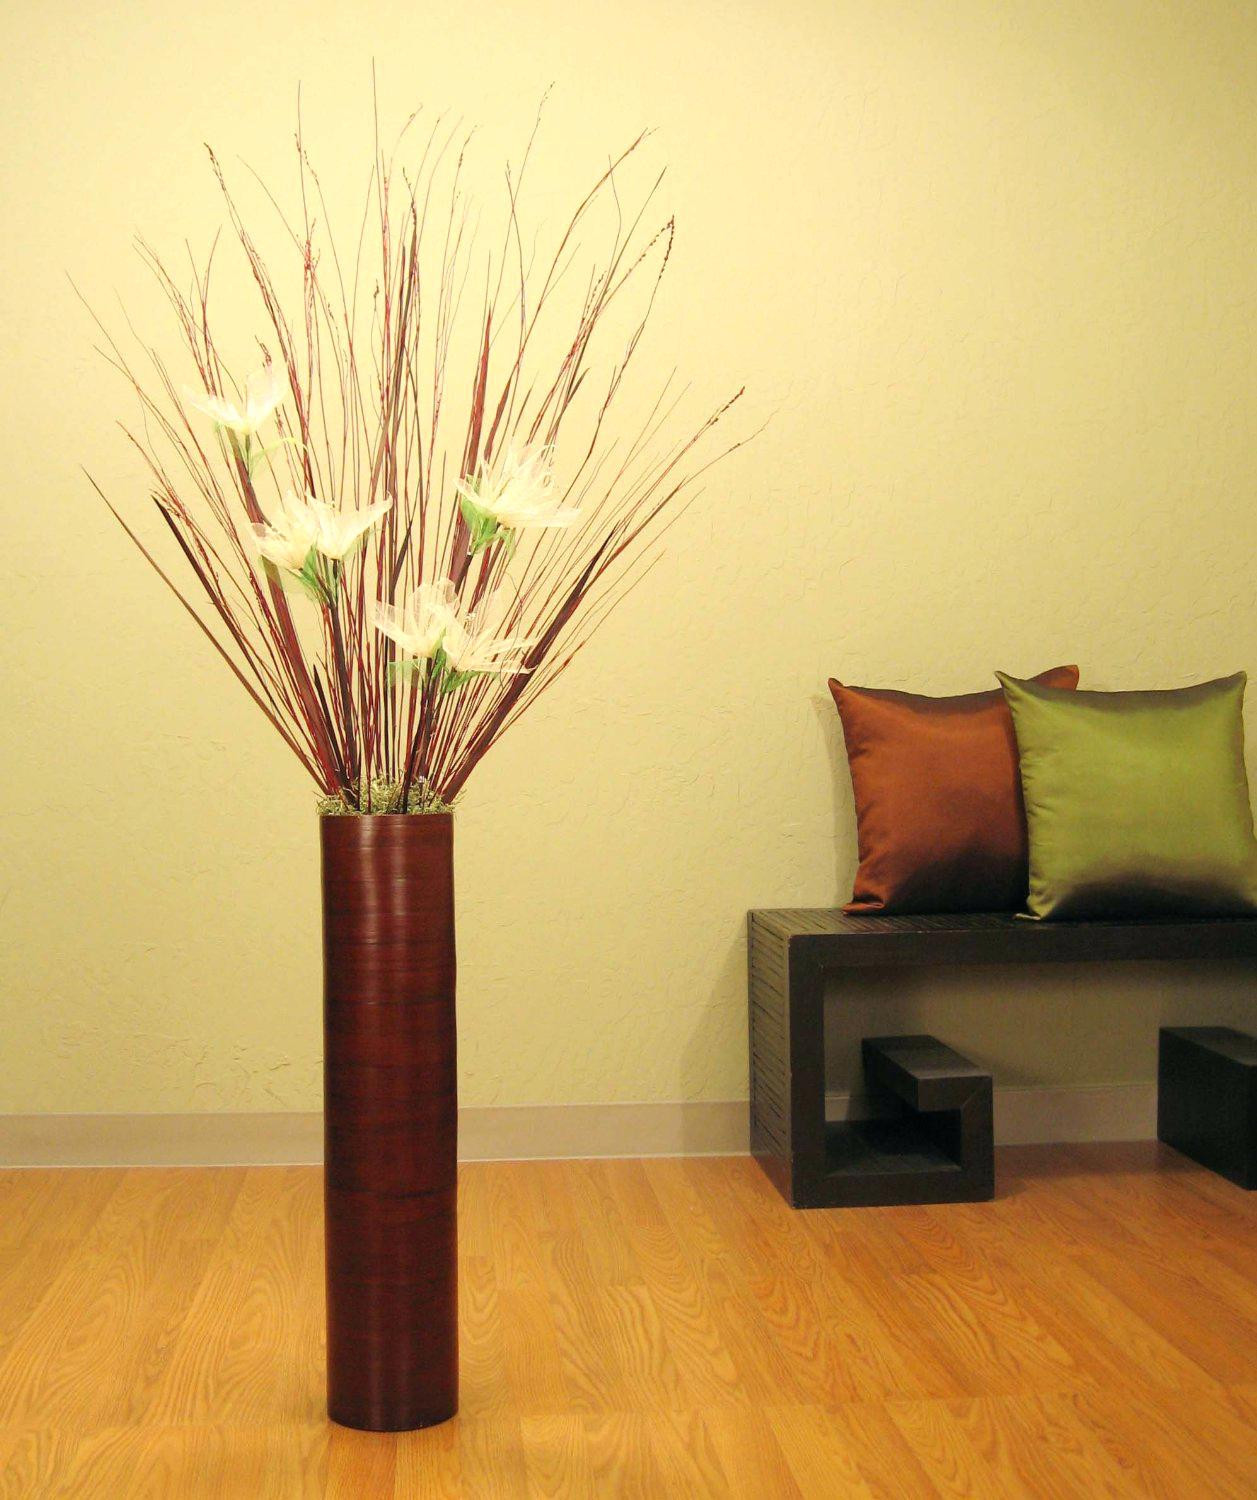 large vase with sticks of large floor vase decor vases with bamboo sticks kcscienceinc org regarding large floor vase decor vases with bamboo sticks